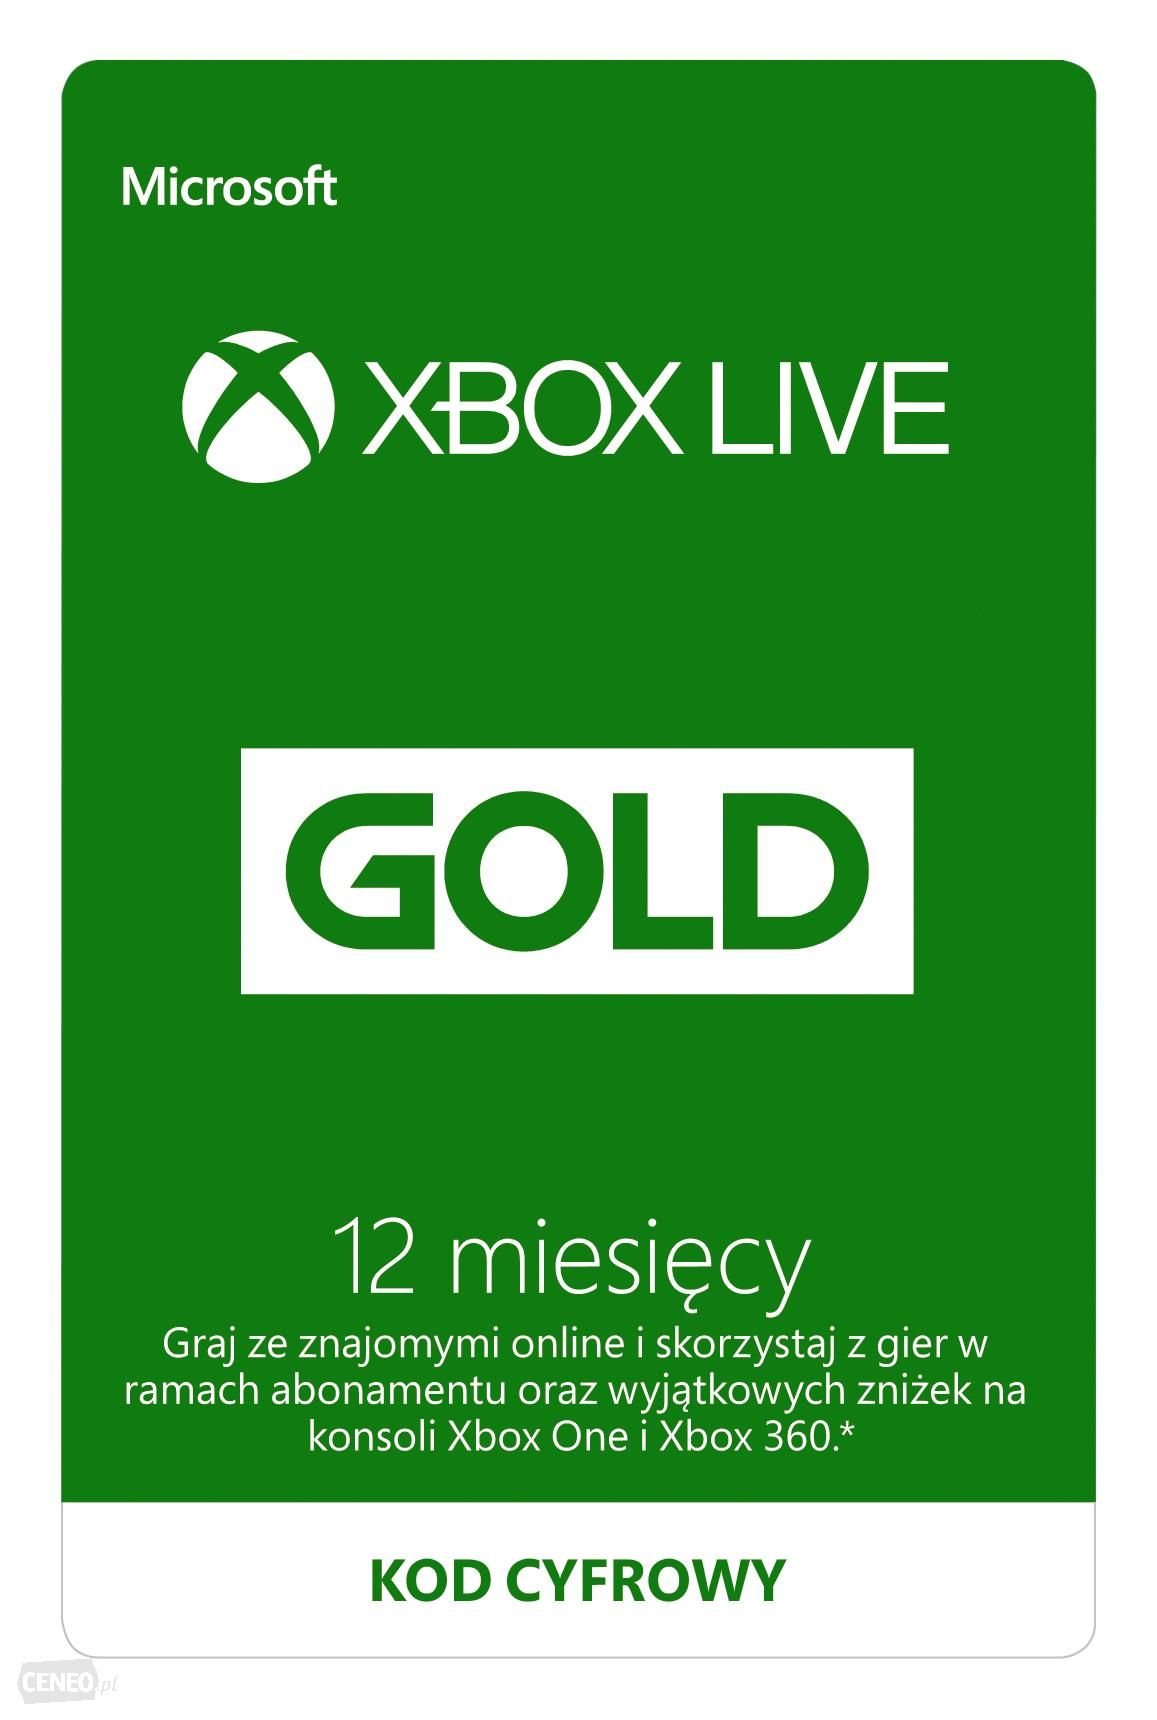 Xbox Live GOLD 12 Months 1 Year